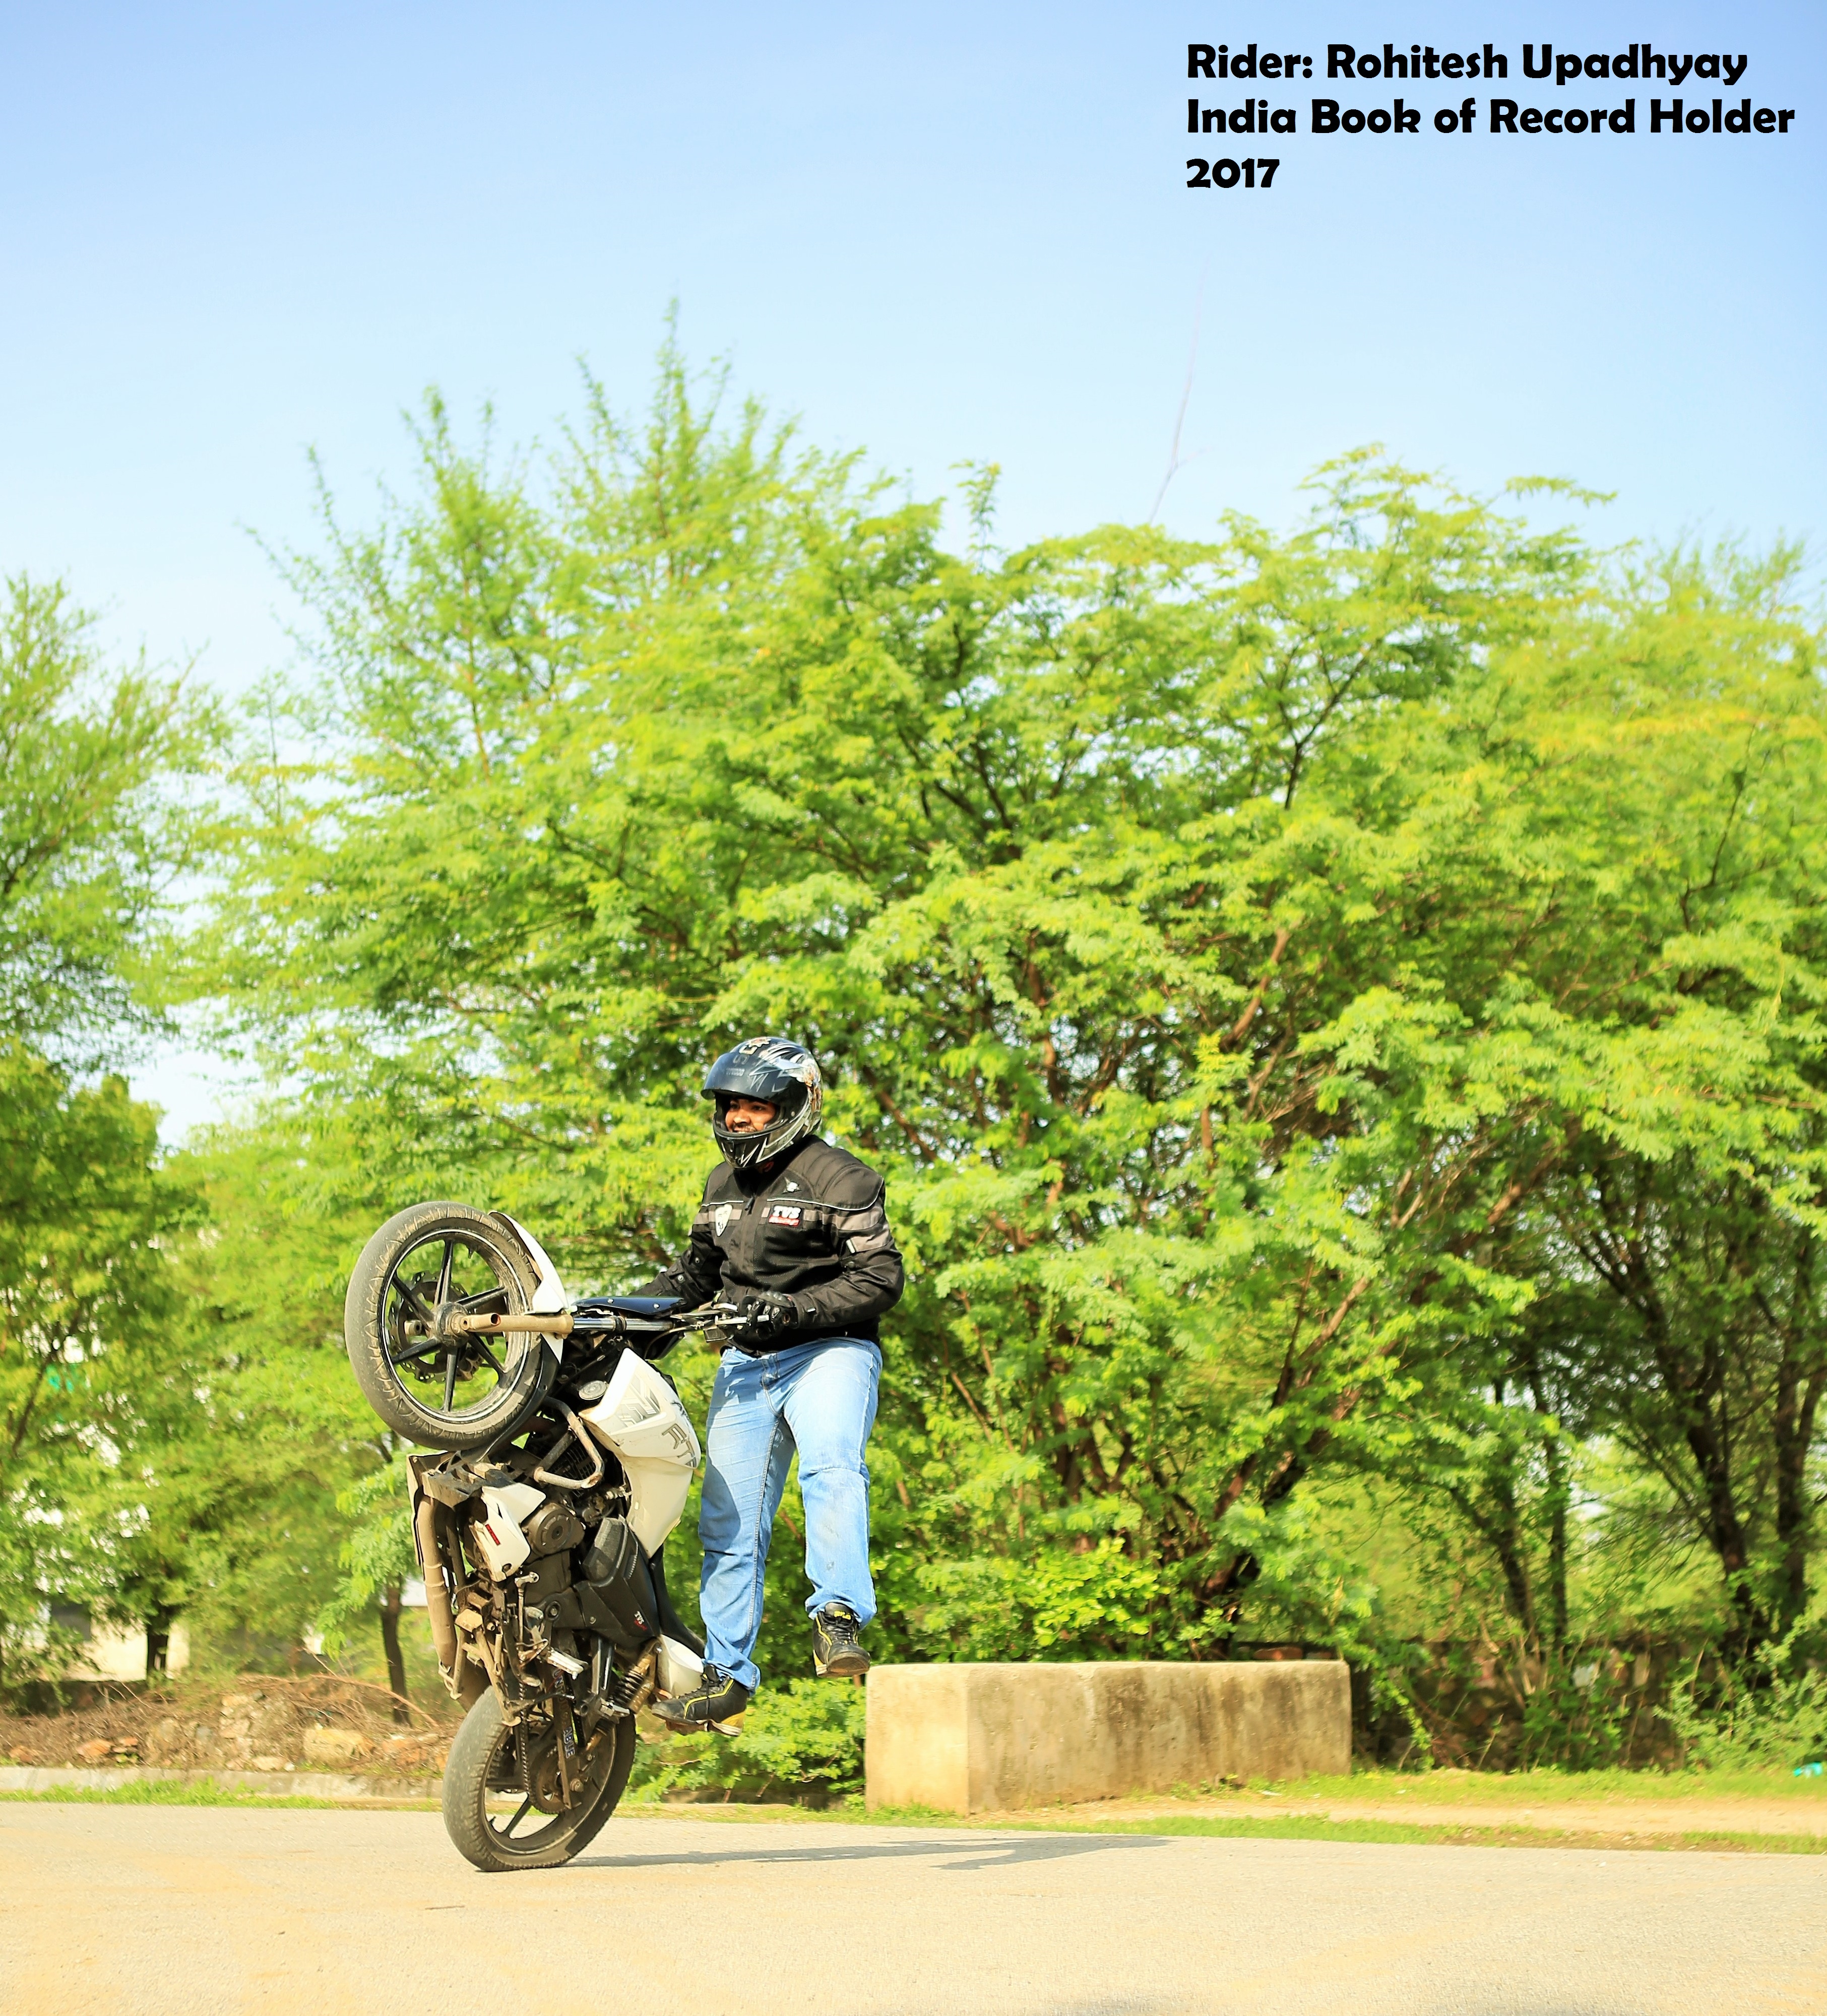 A Trick up the wheel: Sportbike Freestyle Riding Tricks Glossary